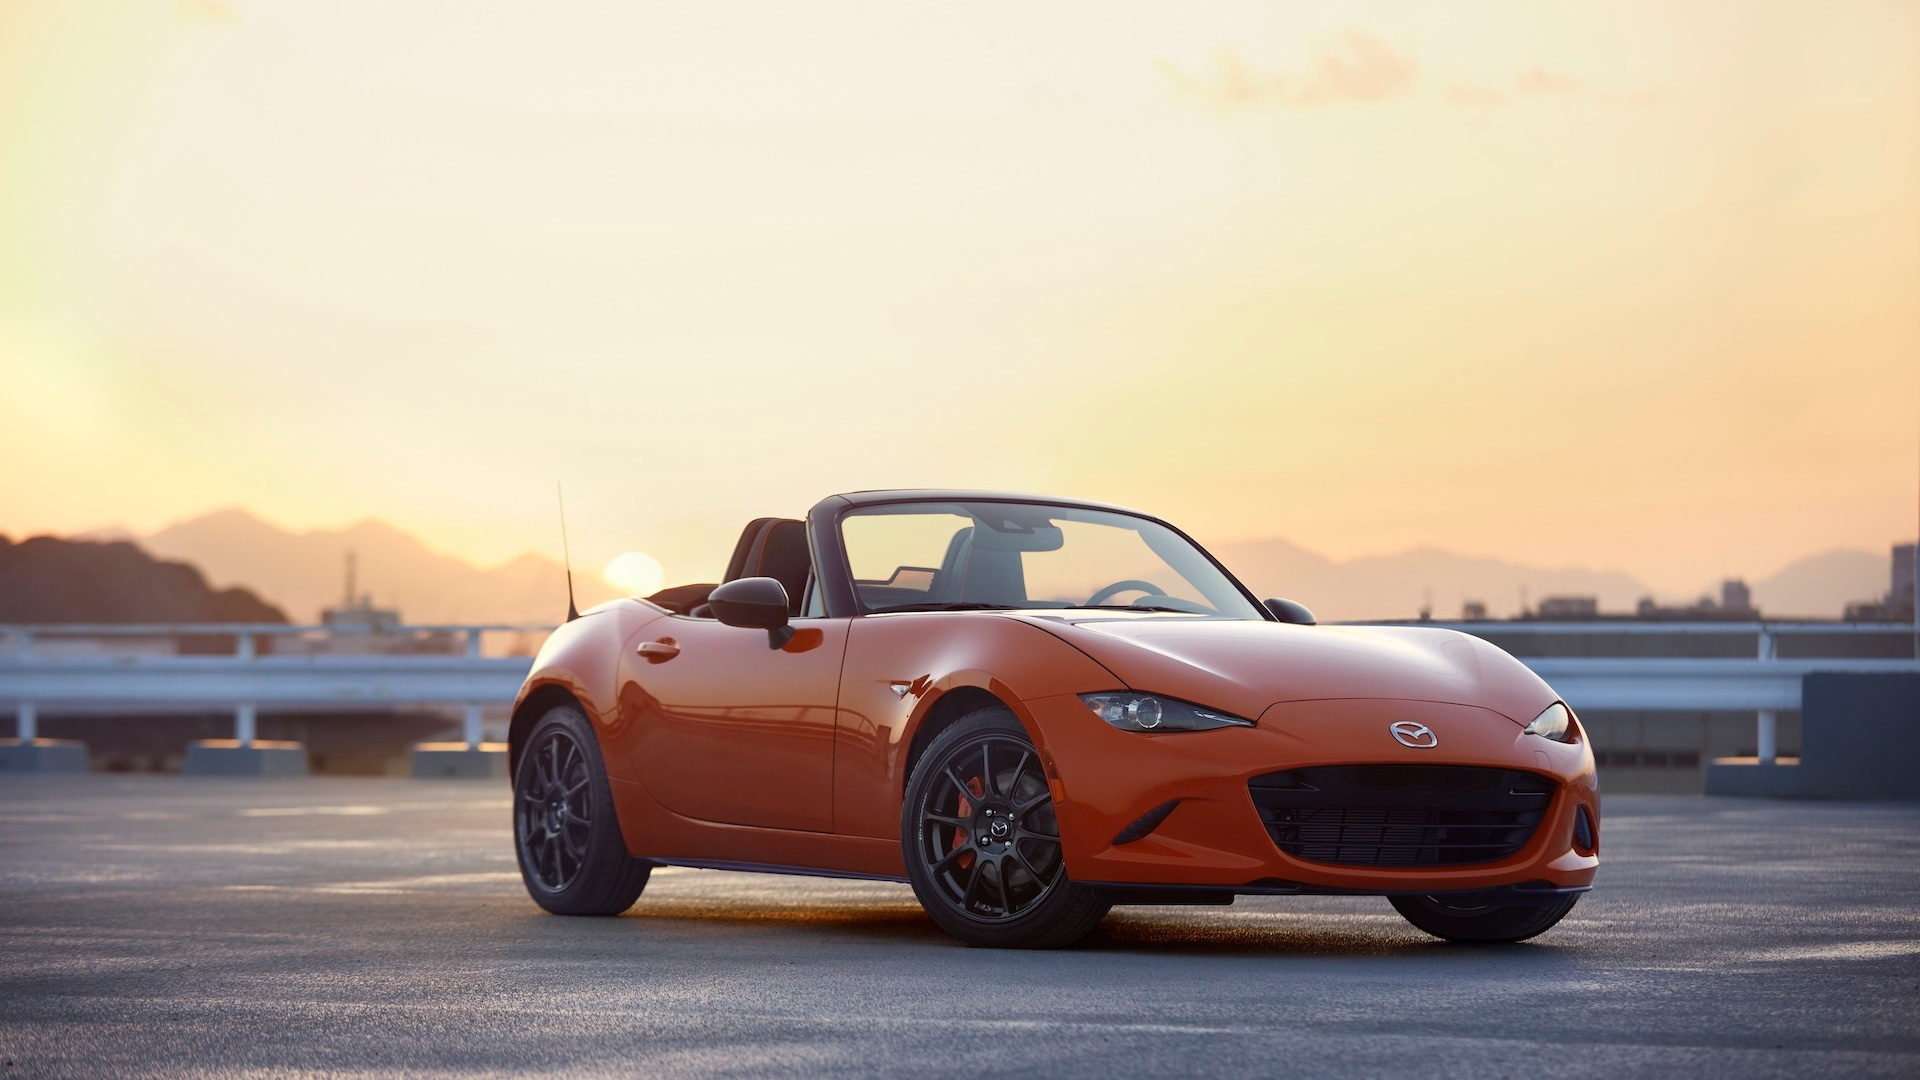 Mazda celebrates 30 years of MX-5 with Anniversary Edition